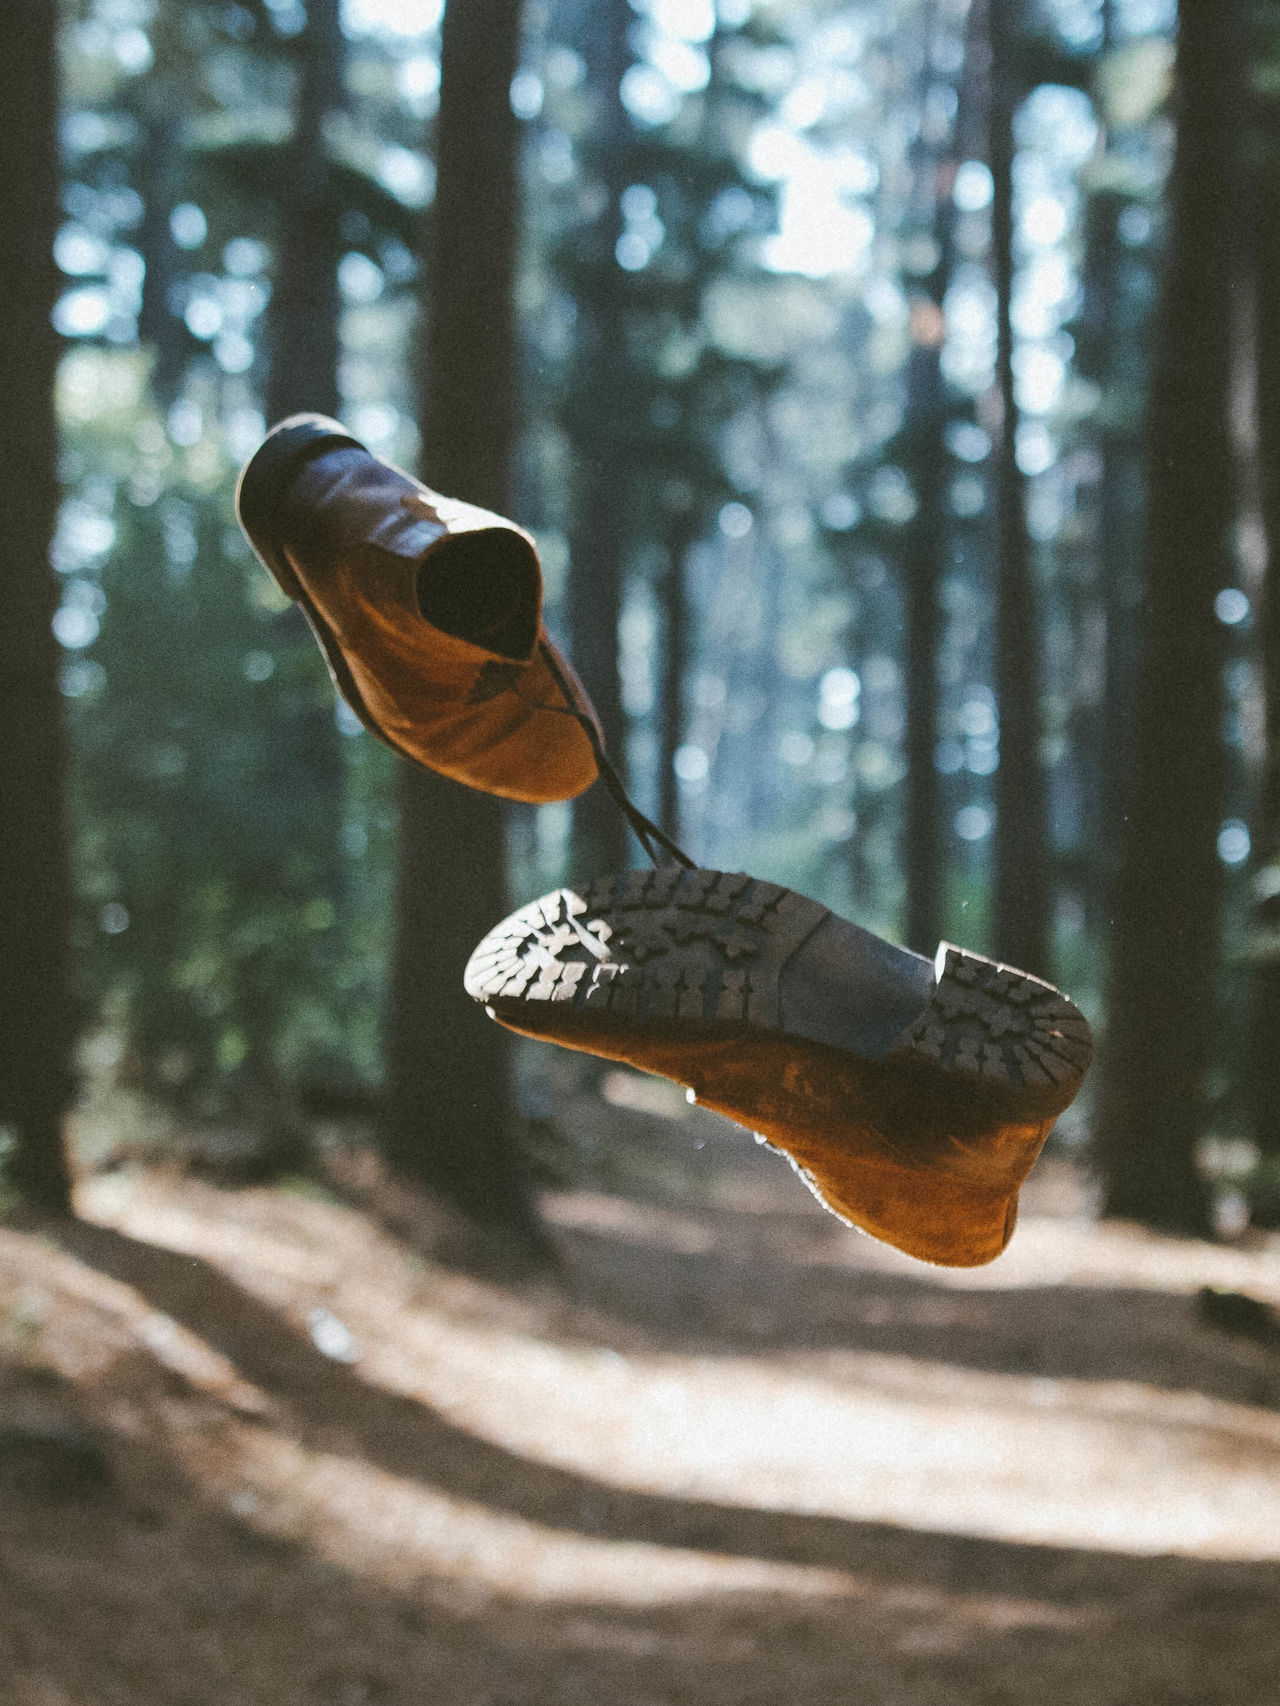 Shoes in mid-air against trees